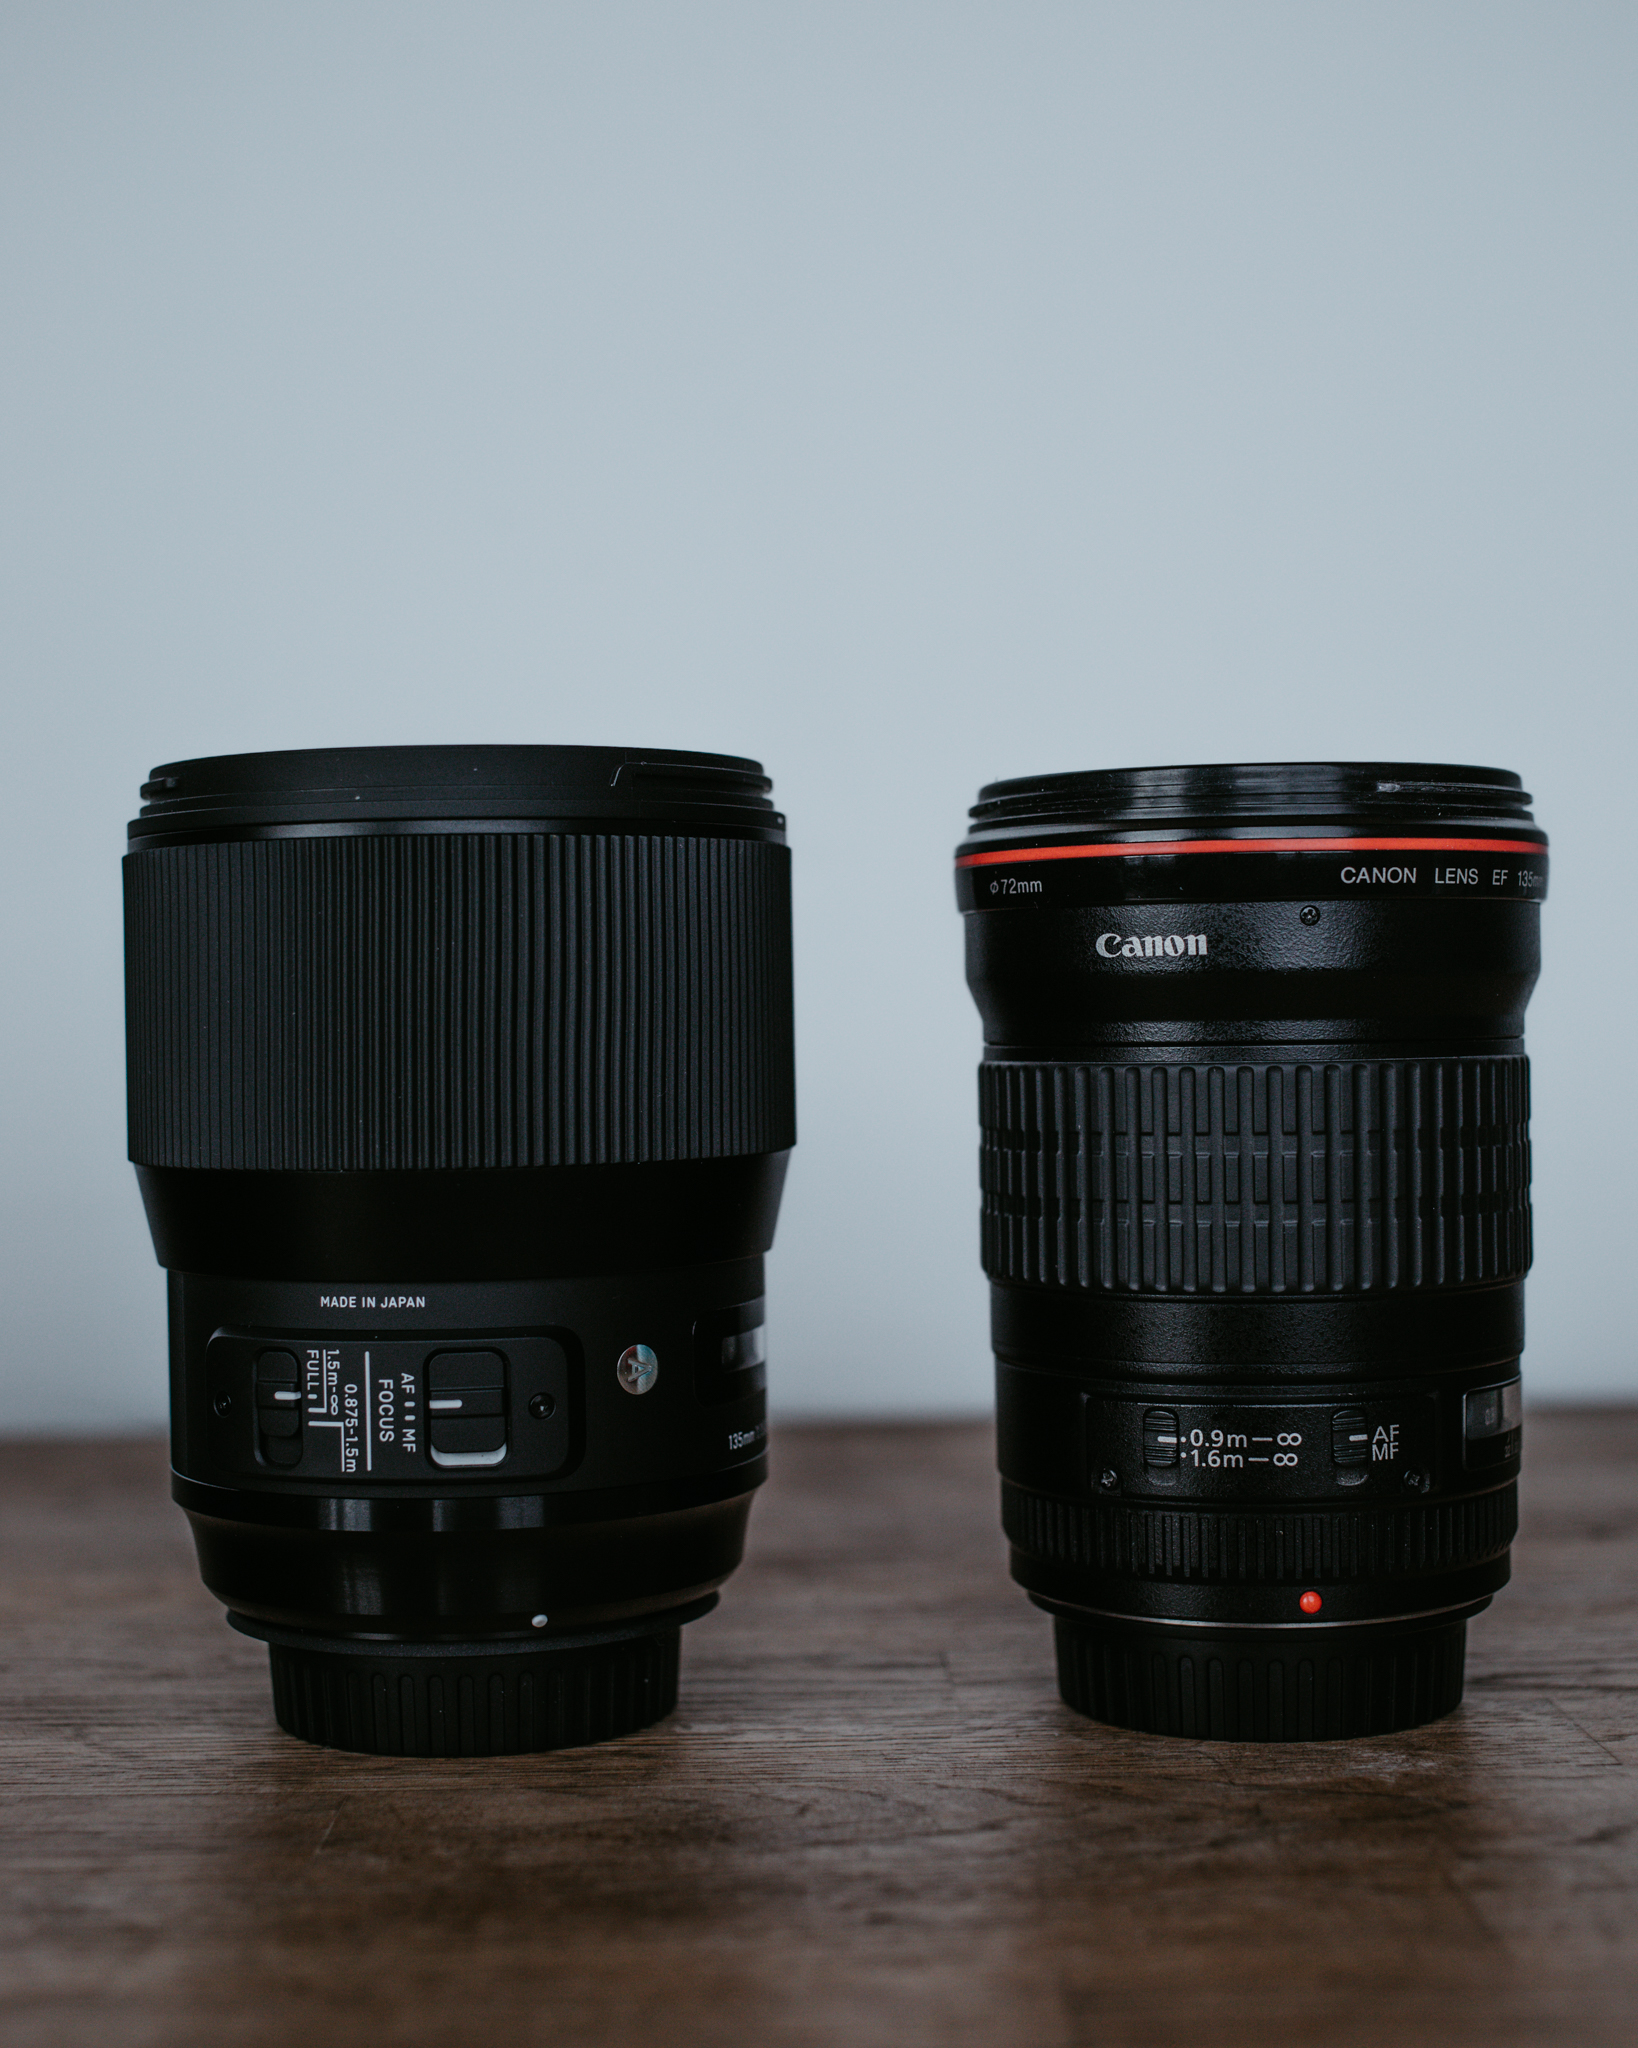 The Sigma and Canon 135mm lens are almost exactly the same height.